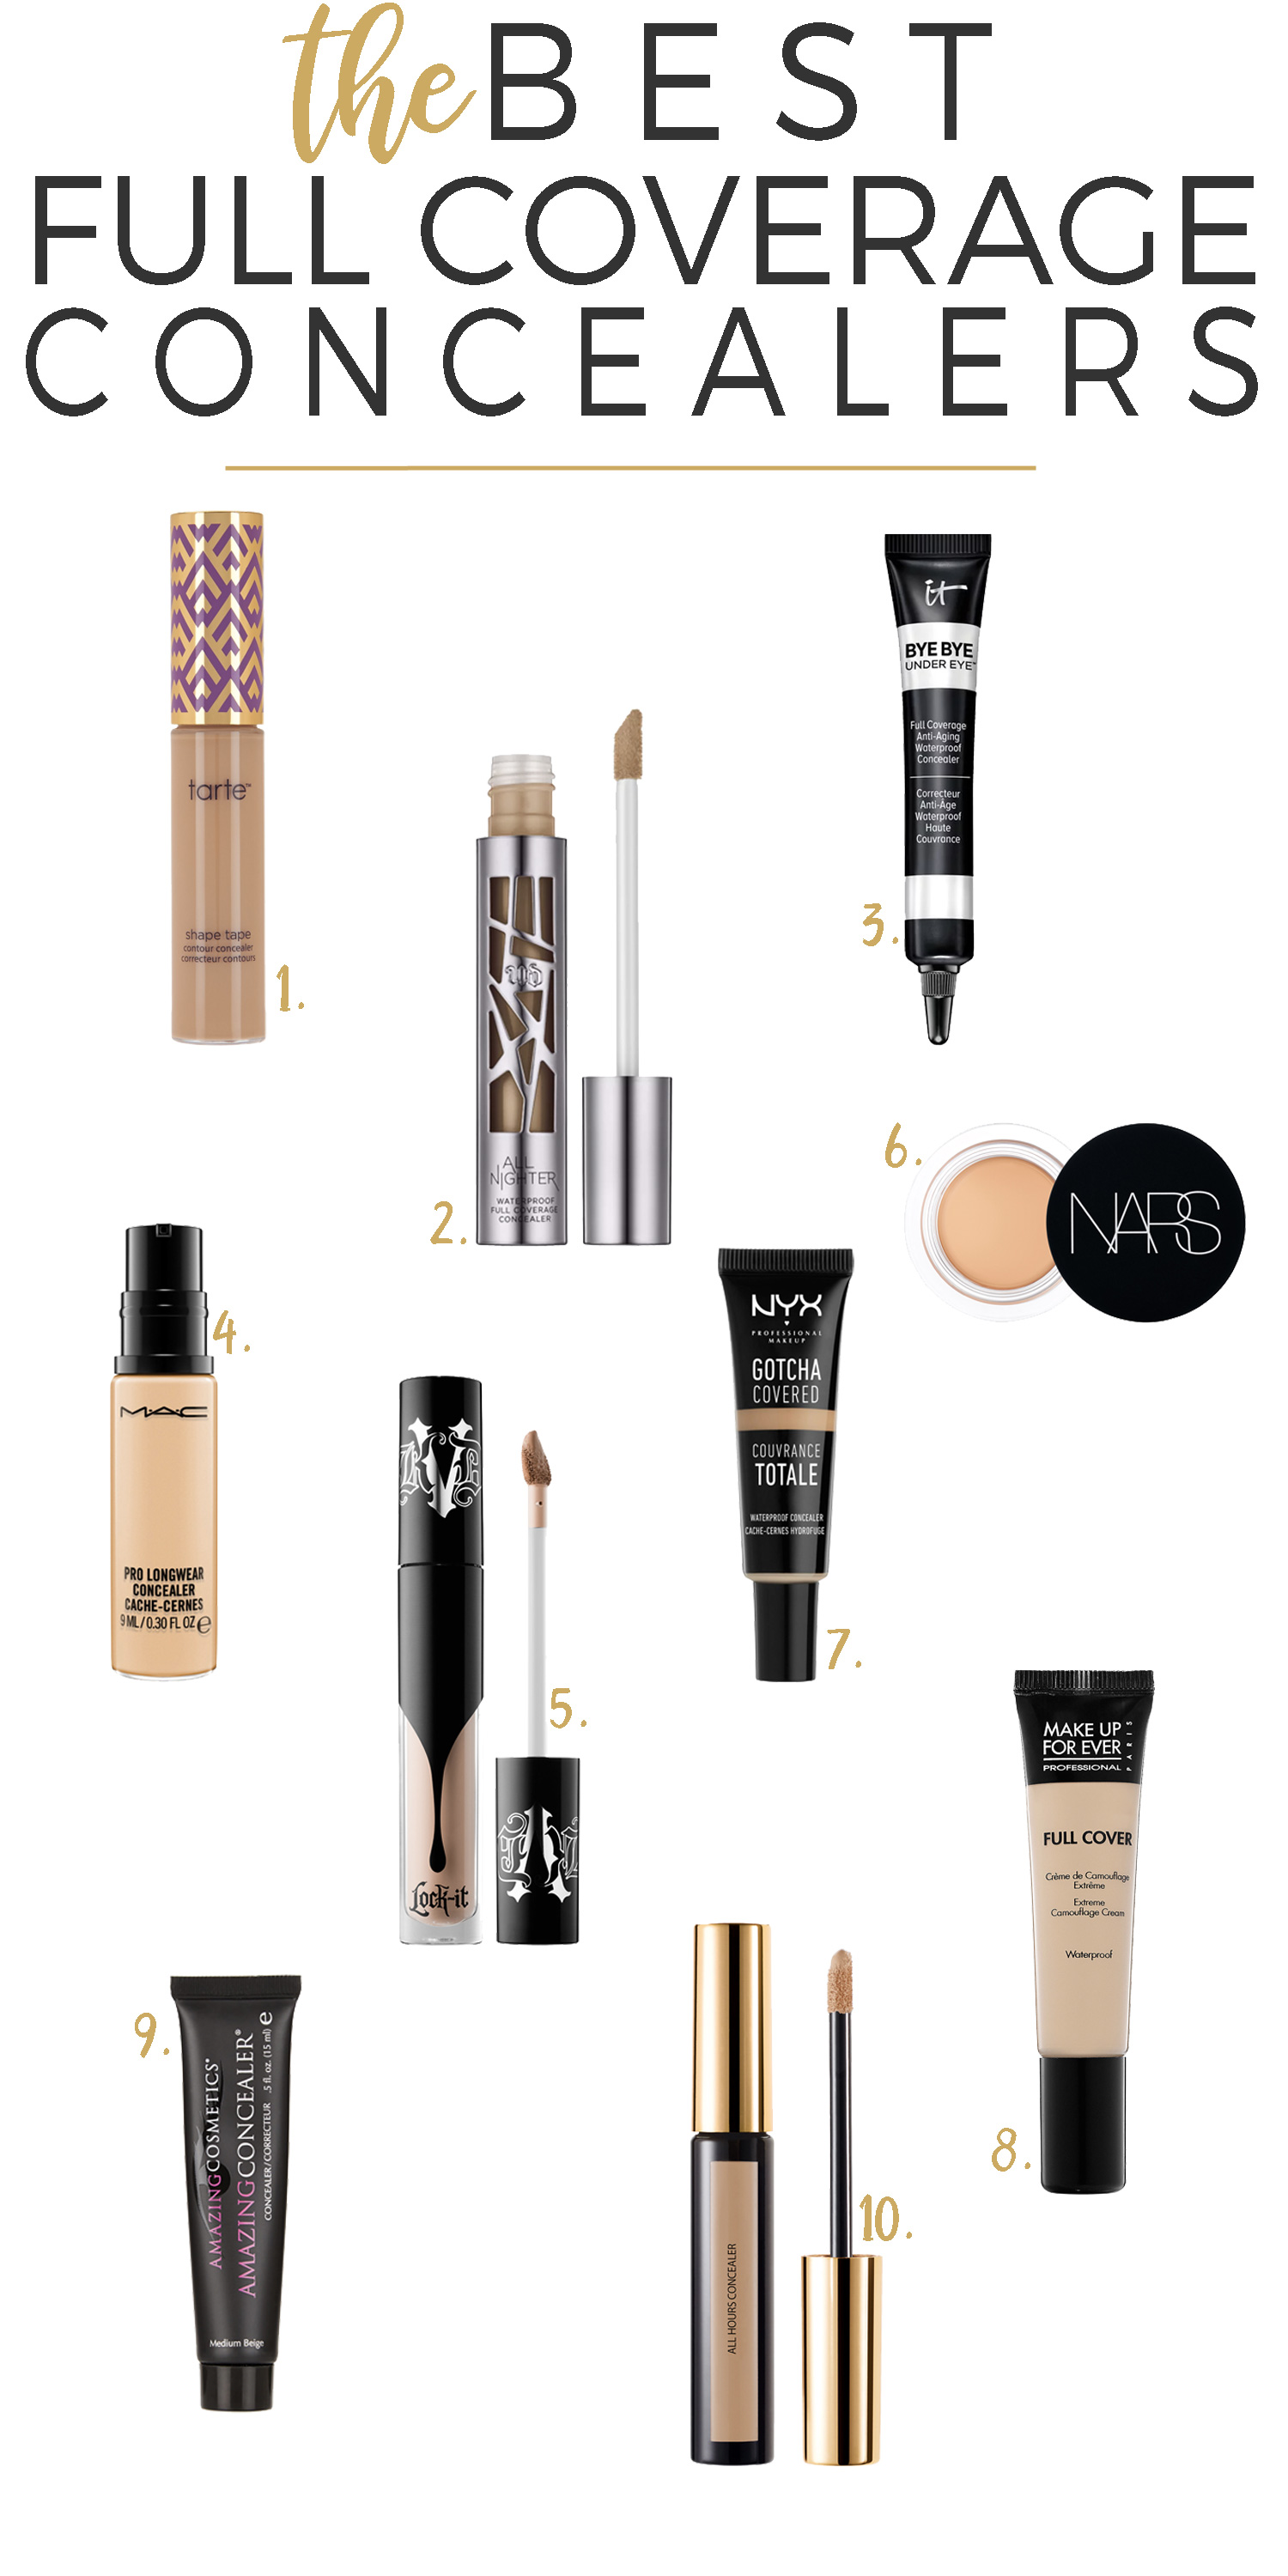 The Best Full Coverage Concealers 2018